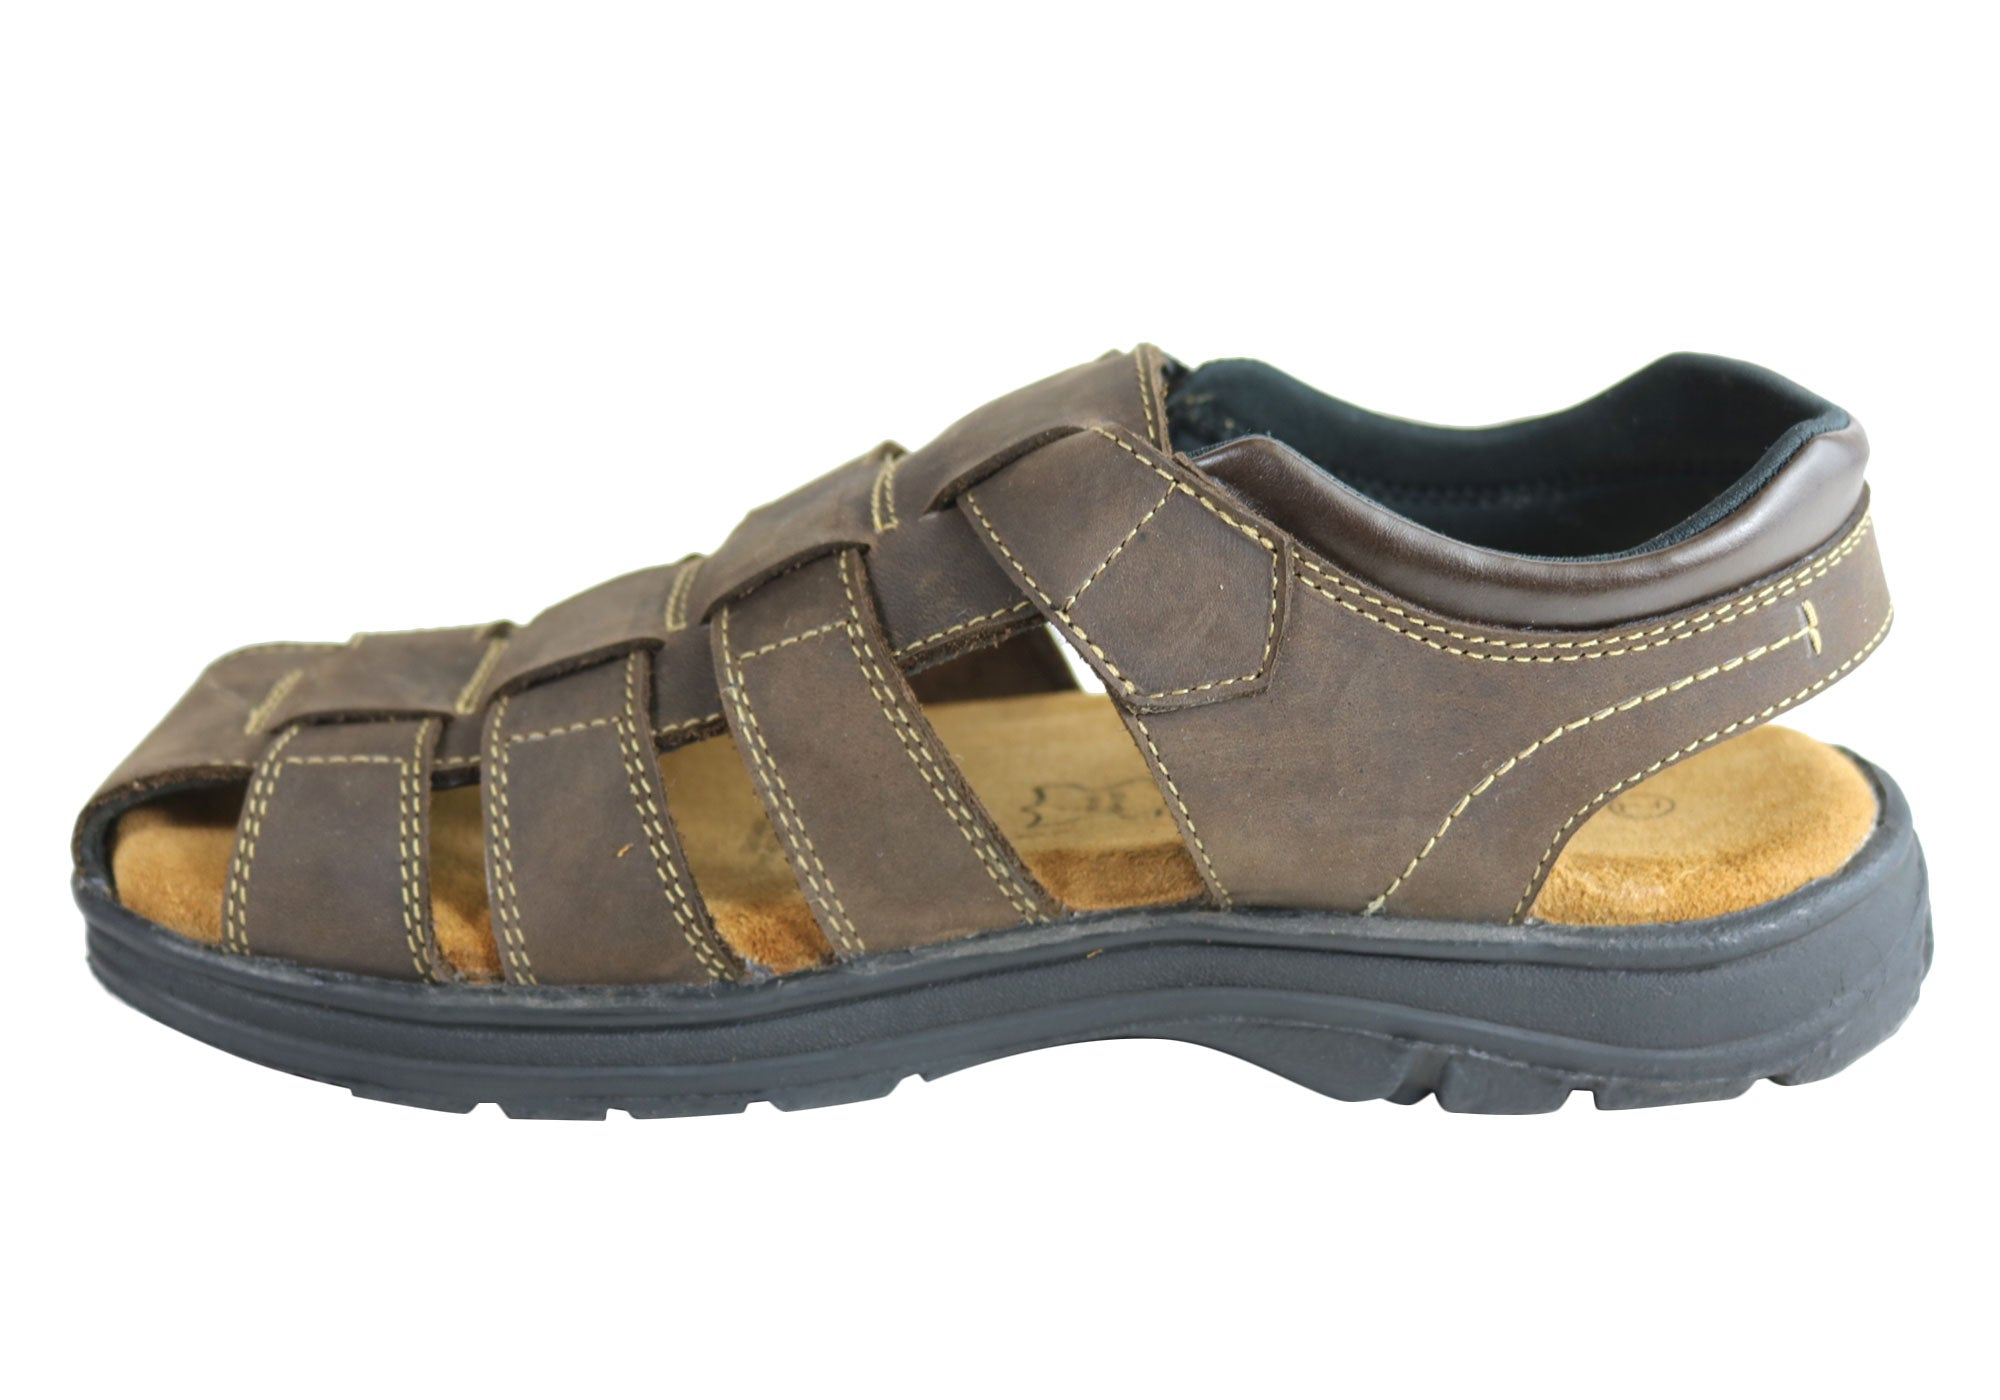 73c720a9fe5 Woodlands Legion Mens Comfortable Cushioned Closed Toe Leather Sandals